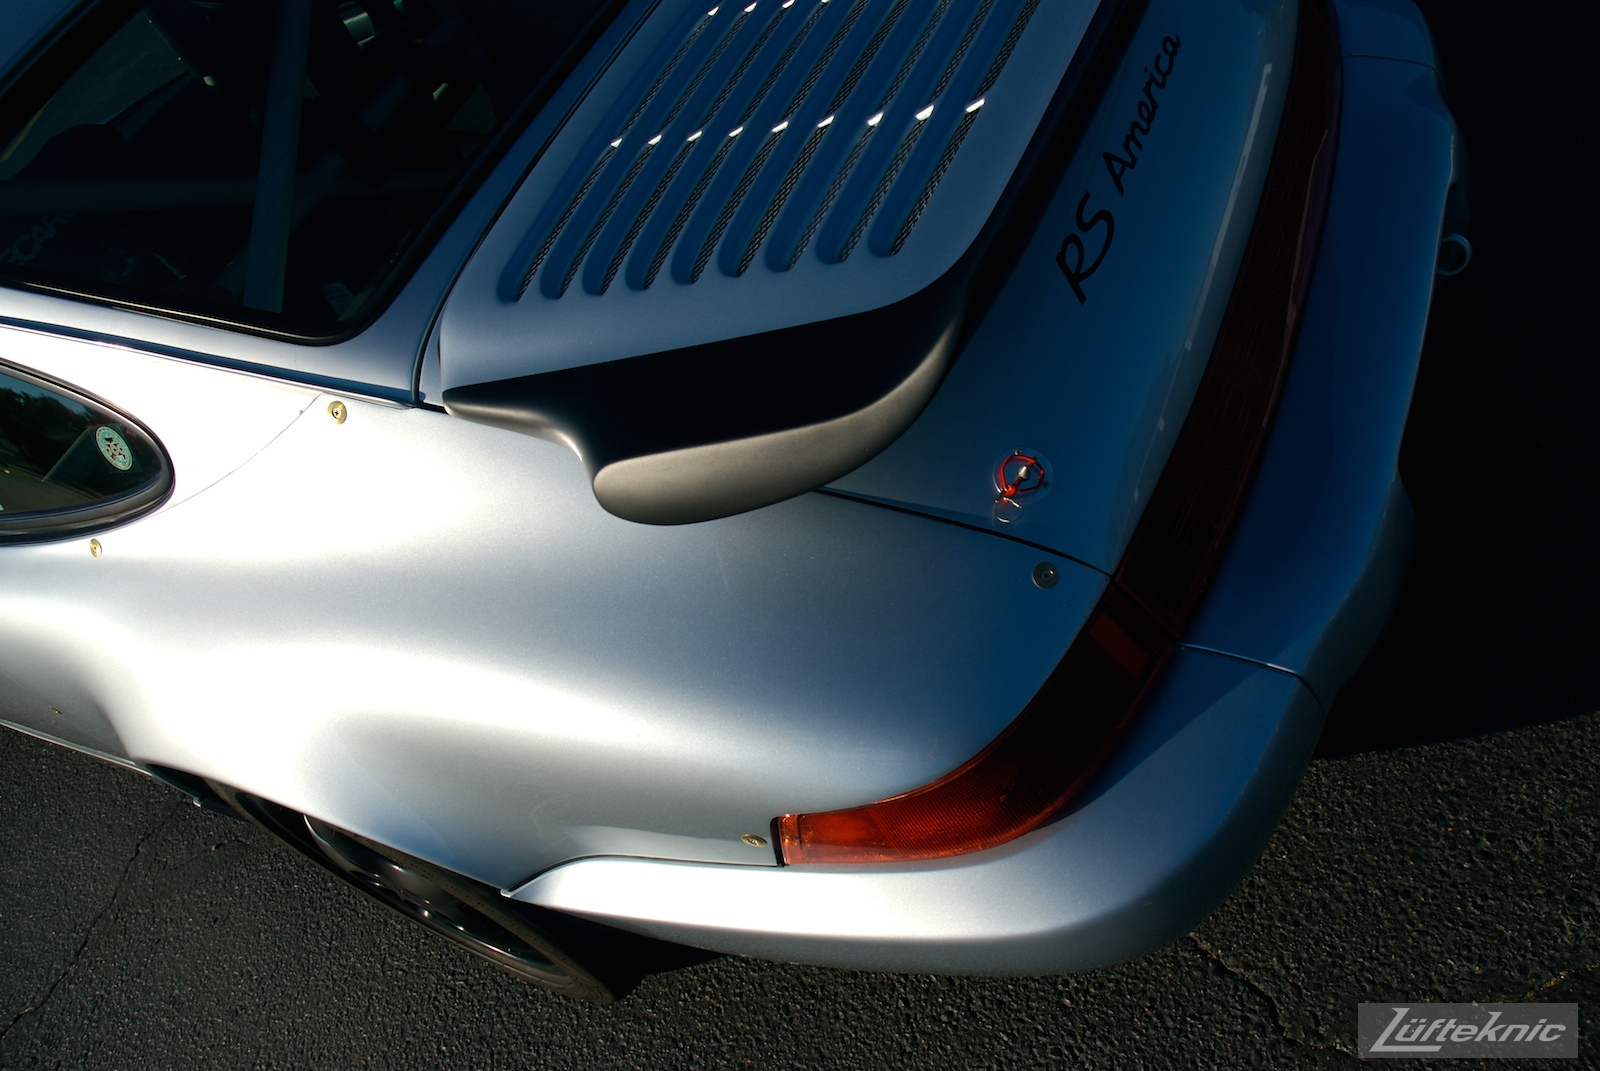 Moody shot of the rear wing, quarter panel and deck lid on the RS America